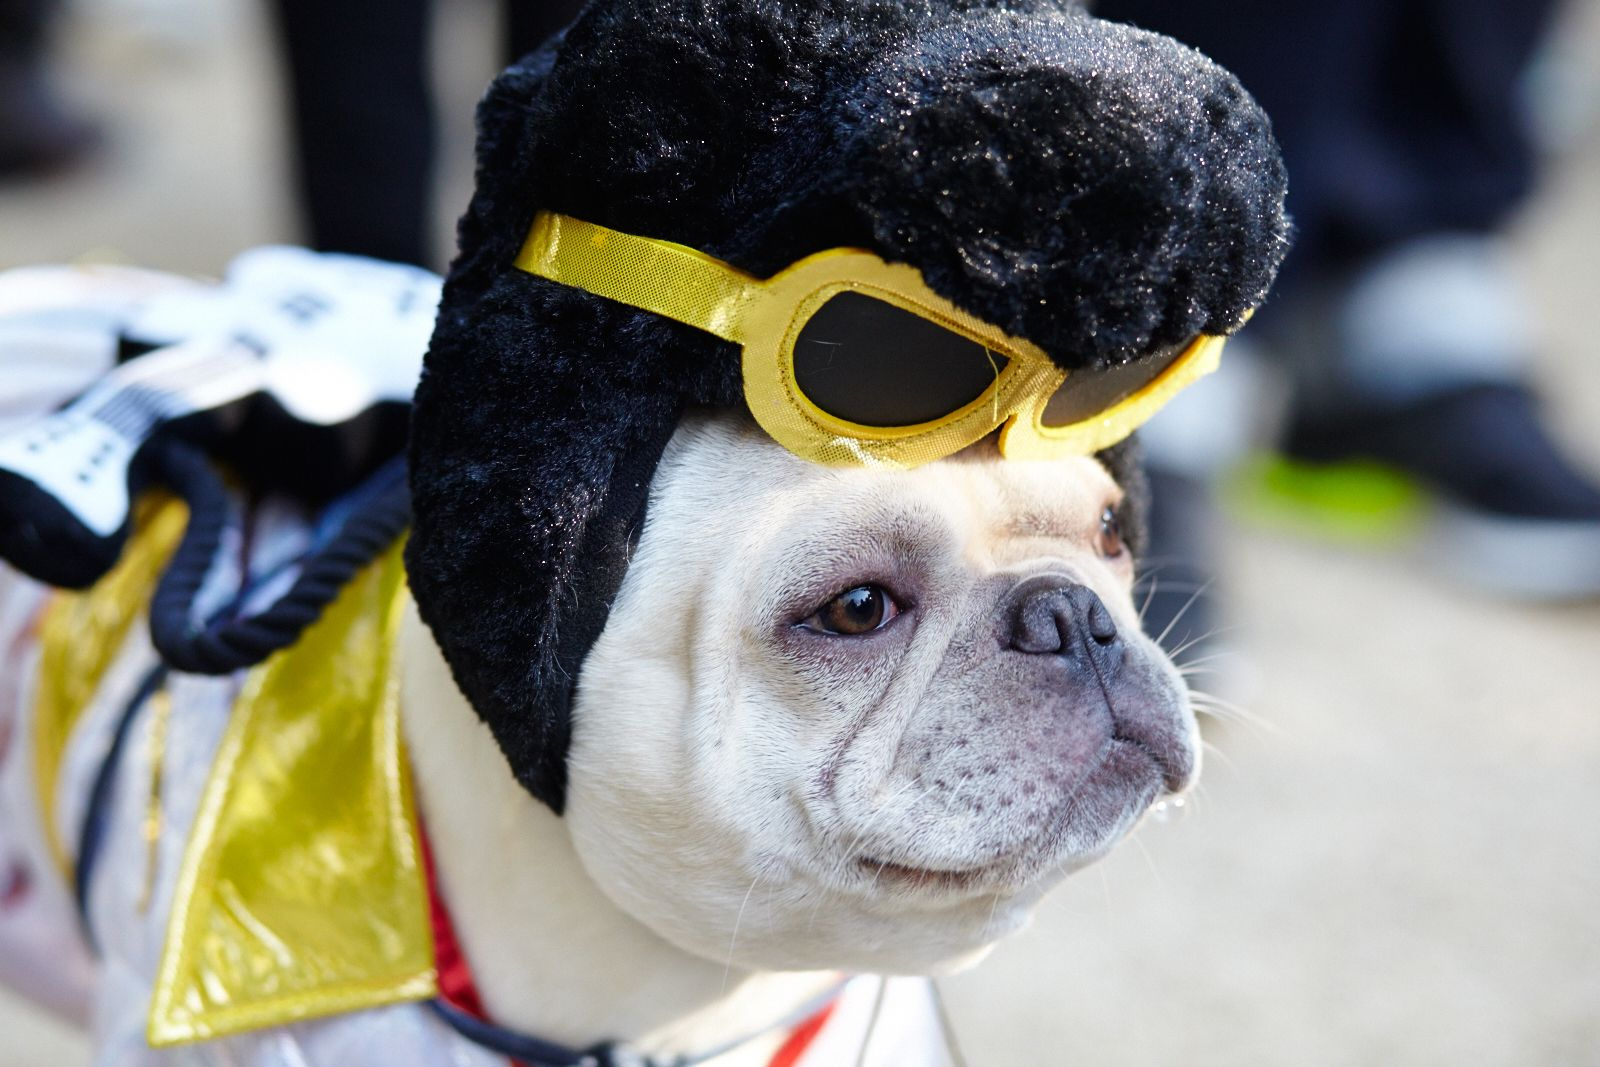 Coolest dog costumes in 2018 10 cool dog costumes youll love solutioingenieria Image collections